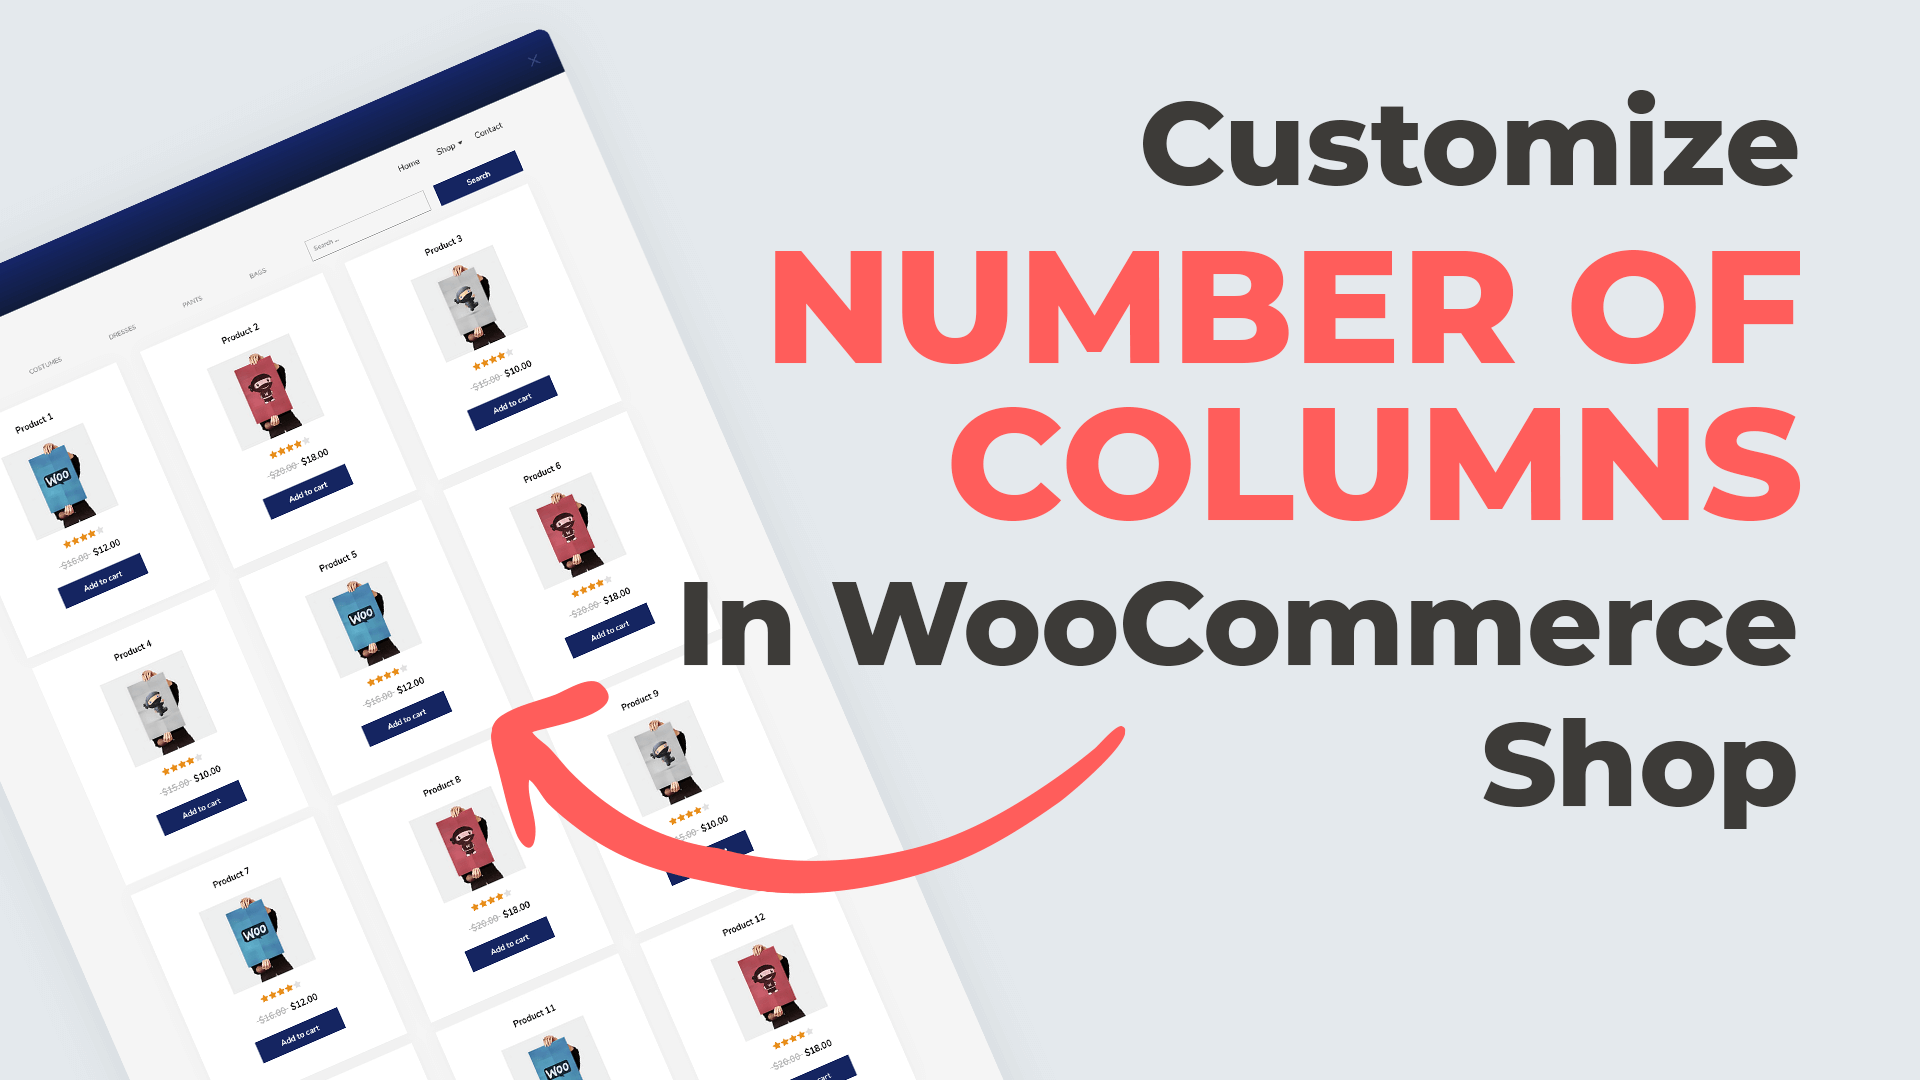 Customize Number Of Columns In WooCommerce Shop